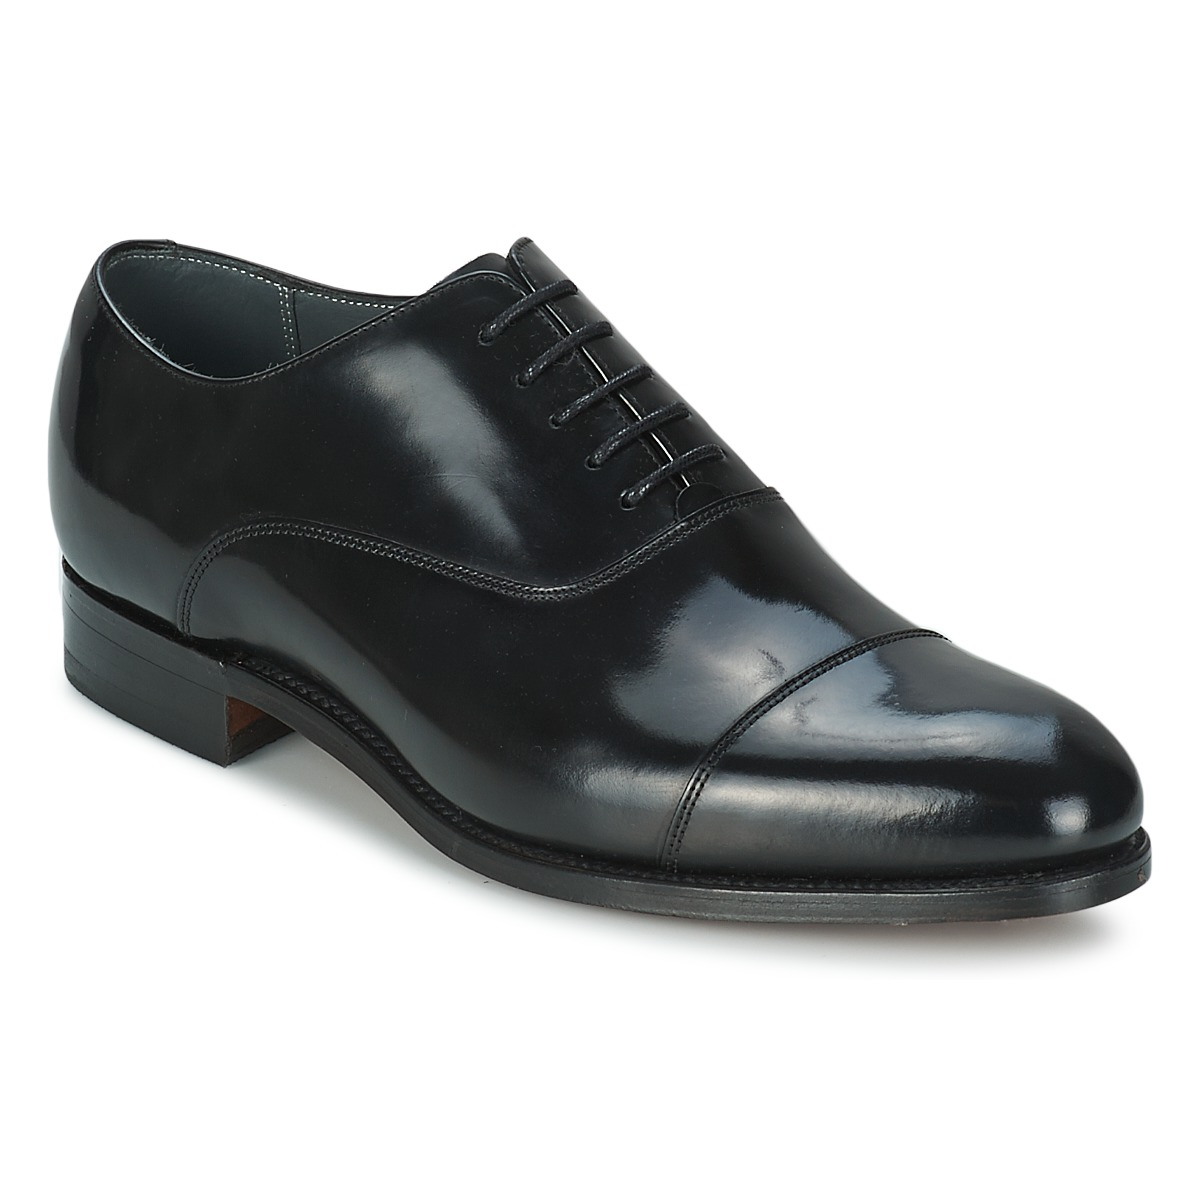 Barker WINSFORD Black